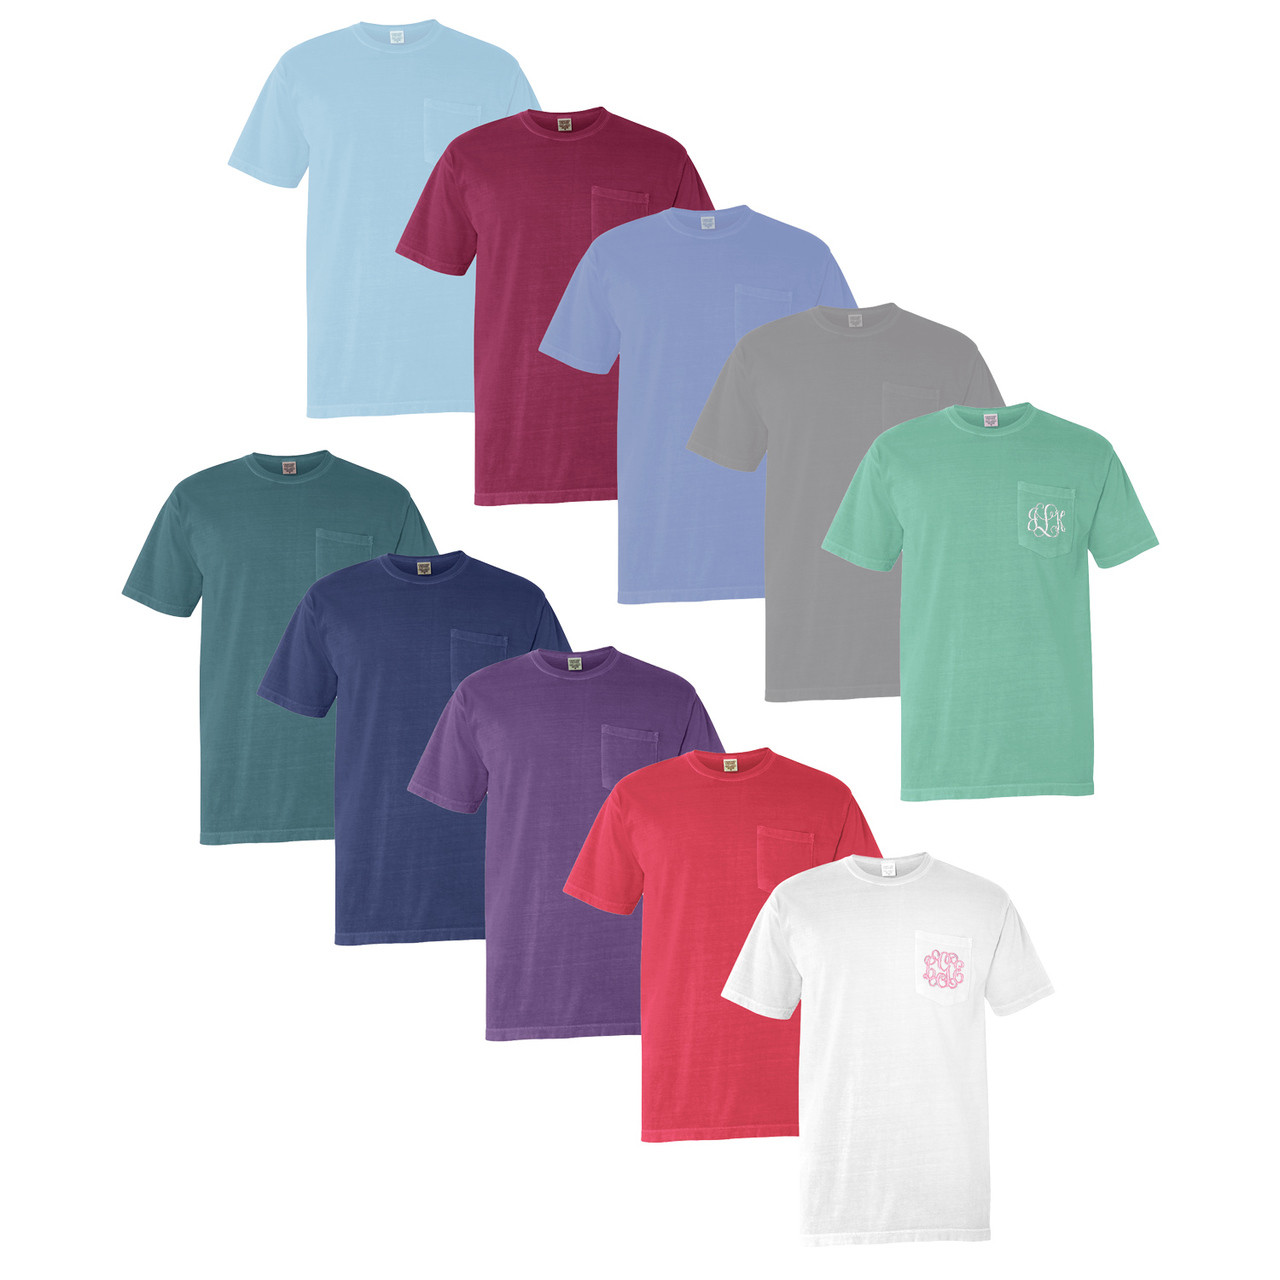 dcd57efd6 Personalized Comfort Color Tshirt